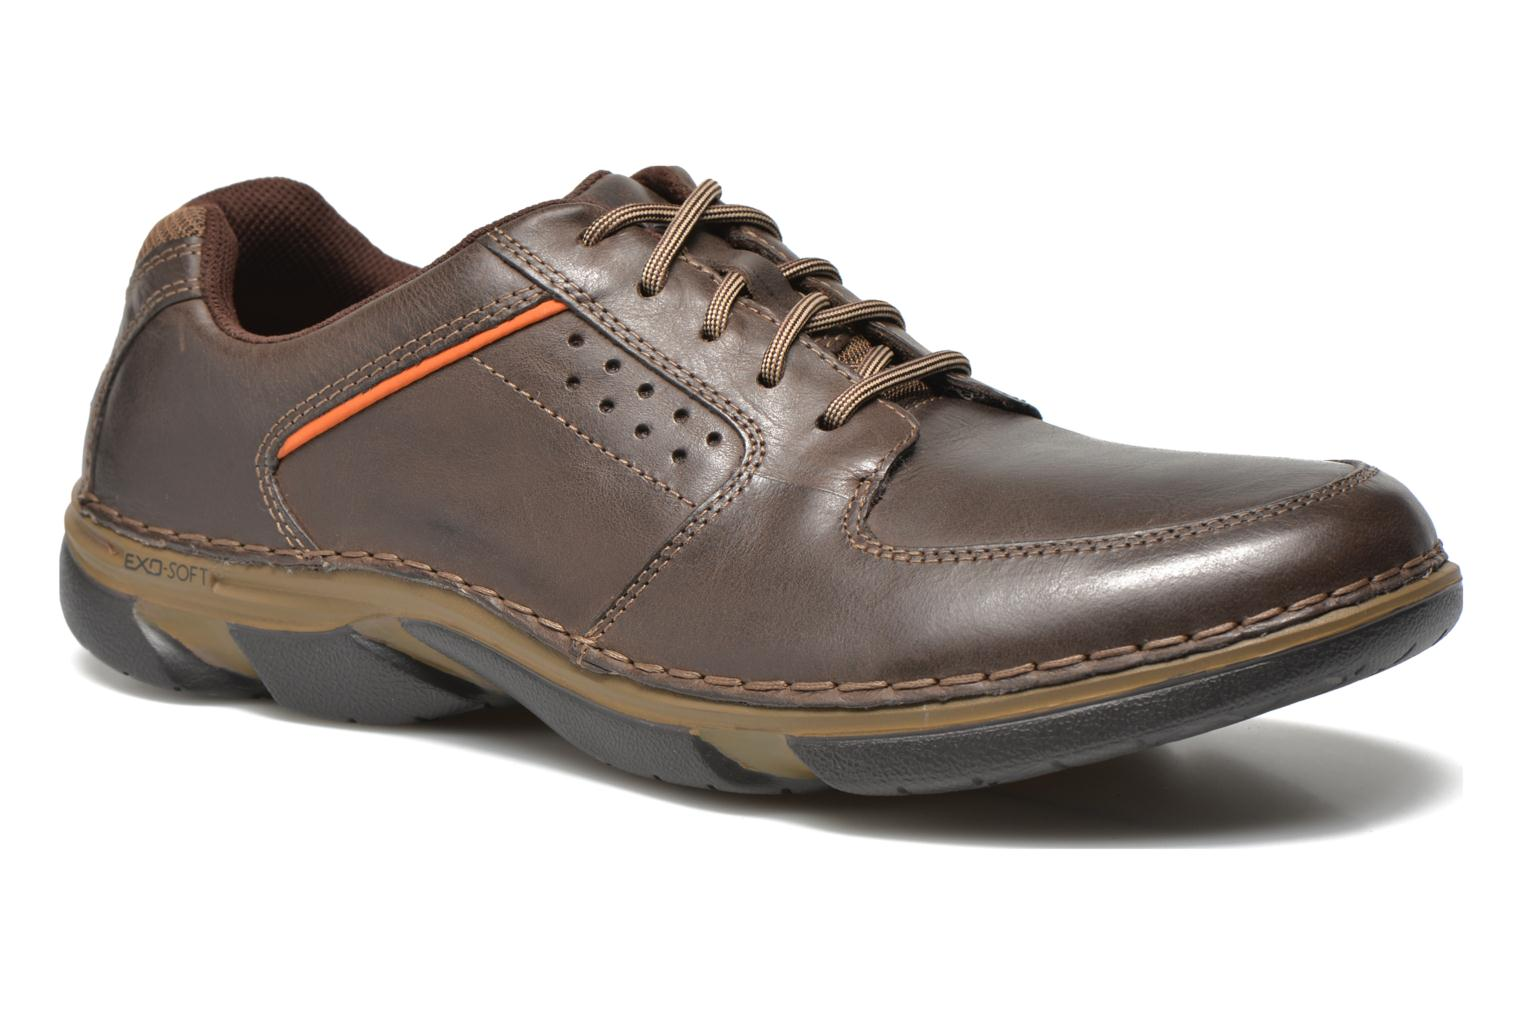 Sneakers RSLF Perf Mudguard by Rockport